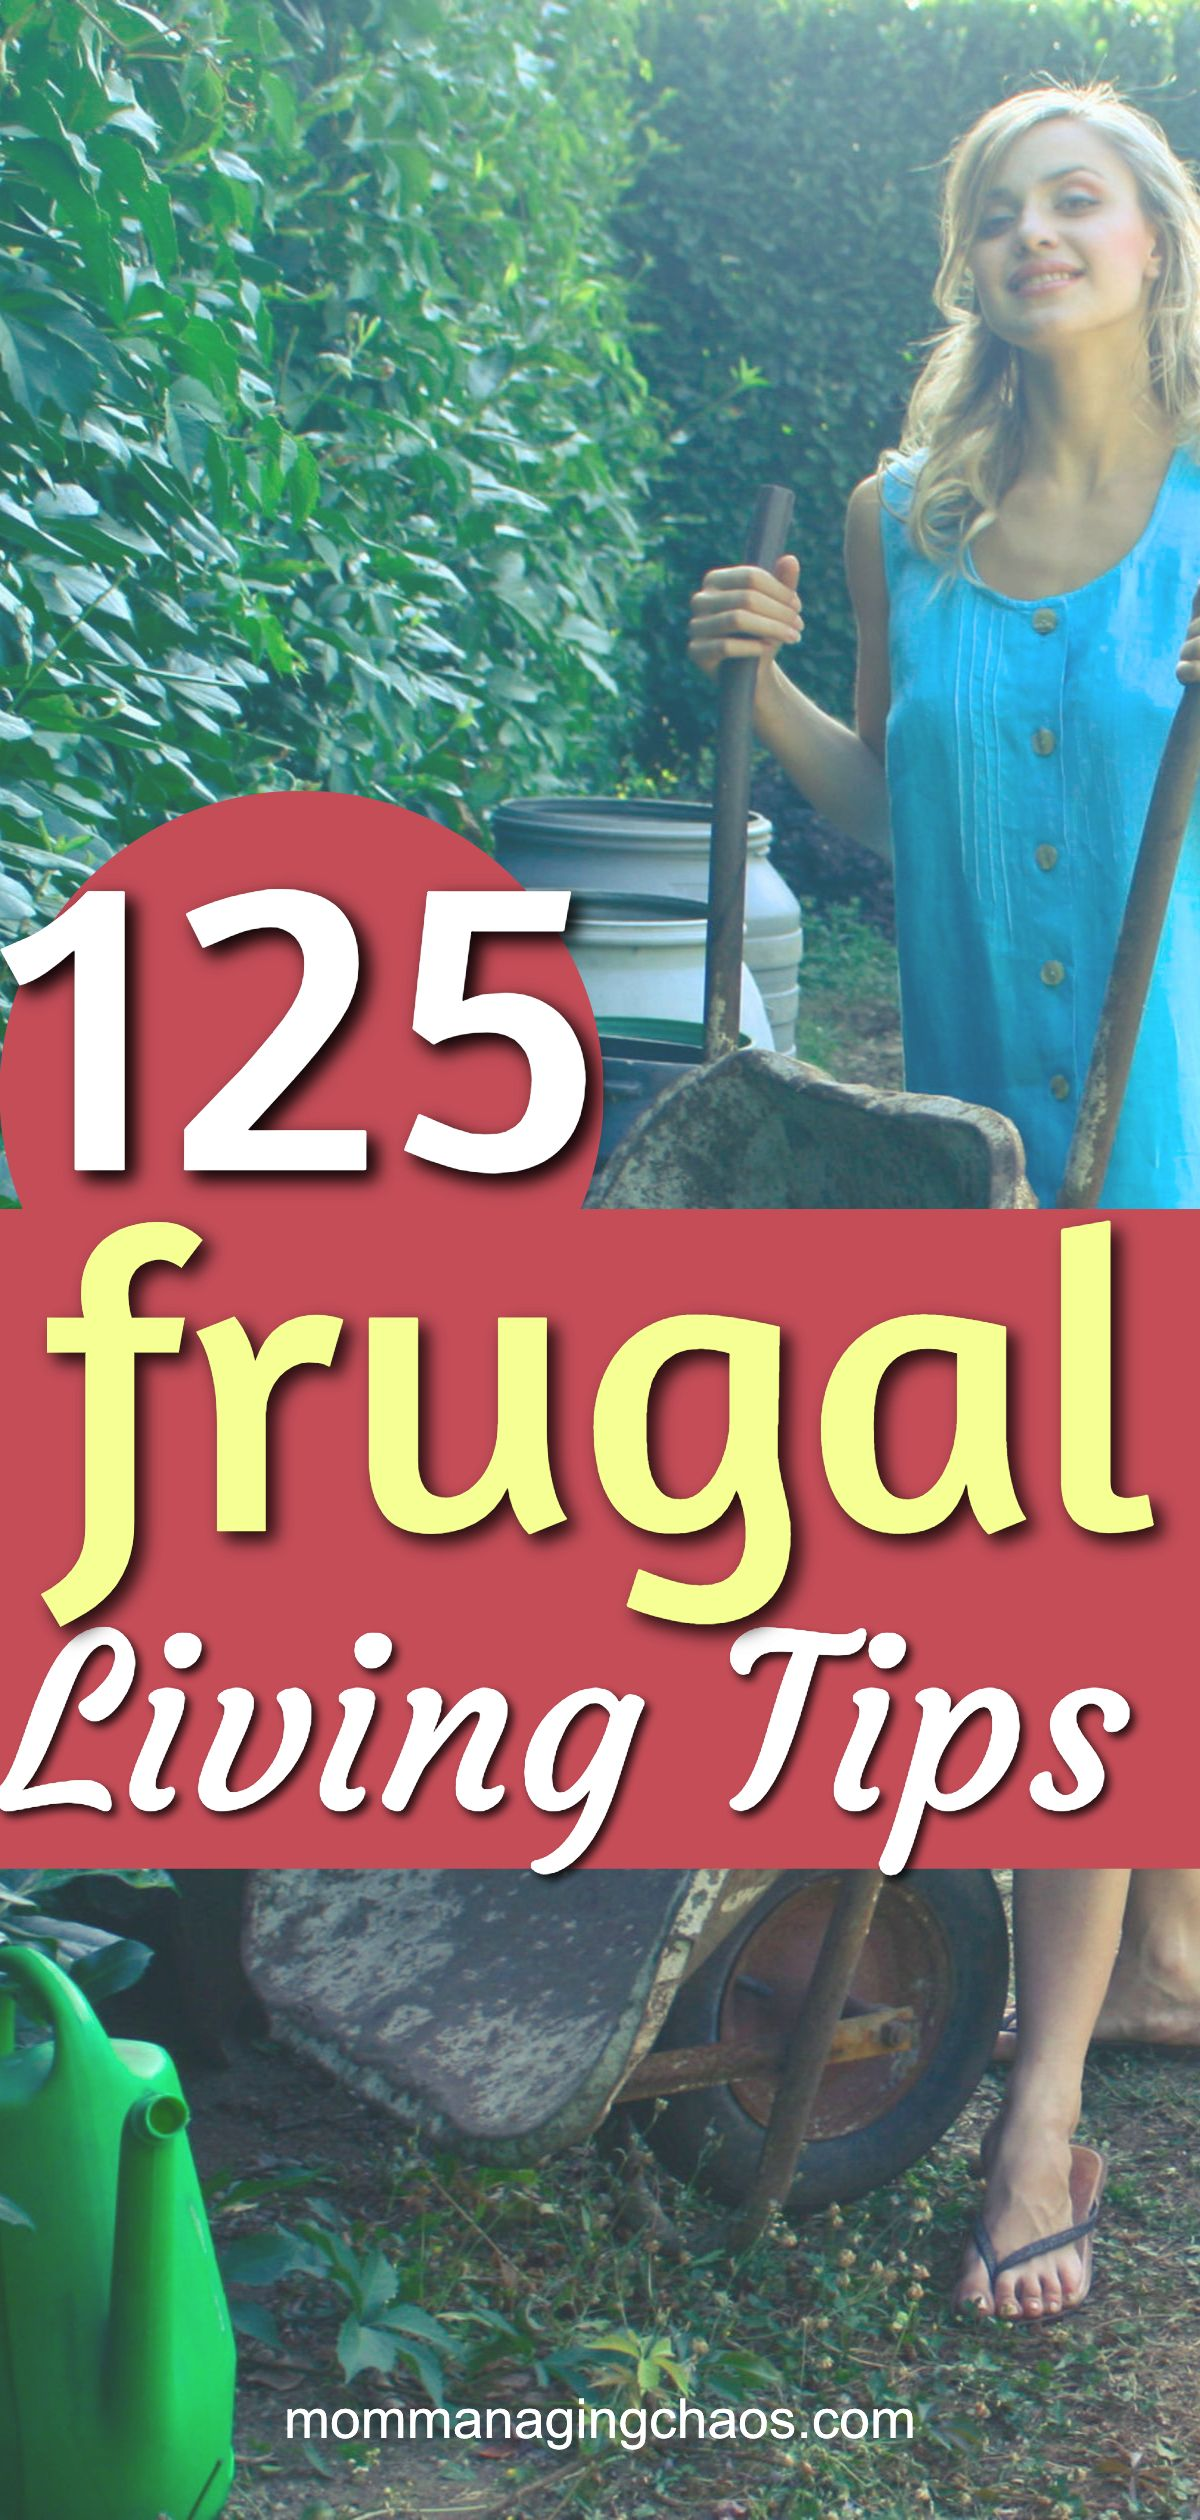 The Ultimate Guide to Practical Frugal Living Tips